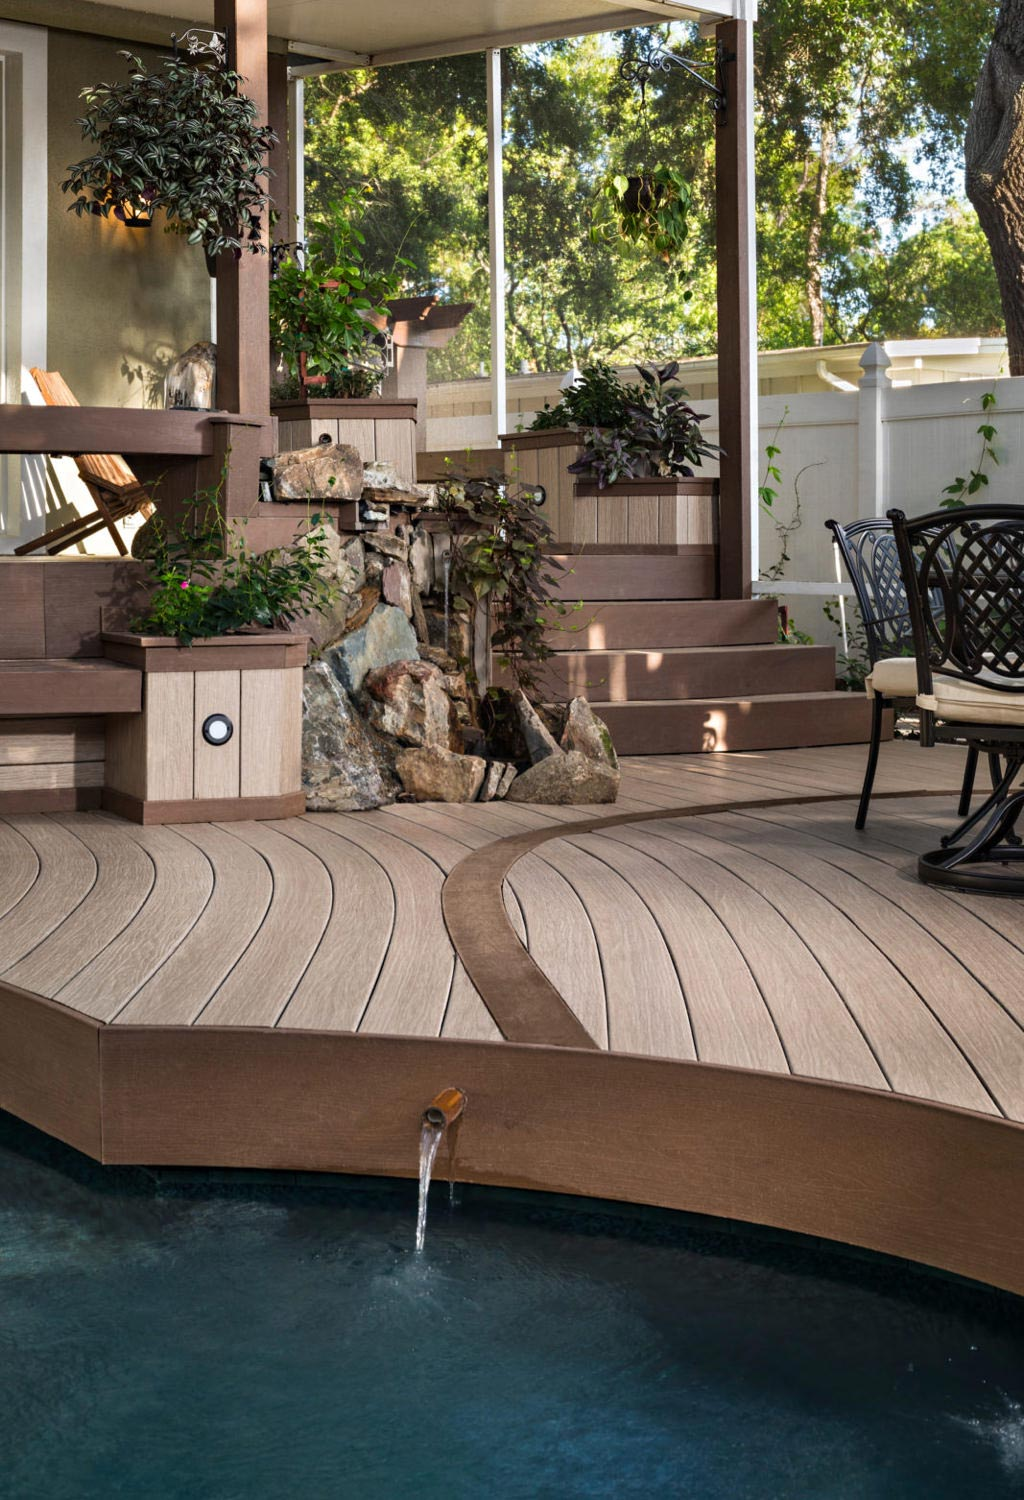 Deck with stairs and water feature